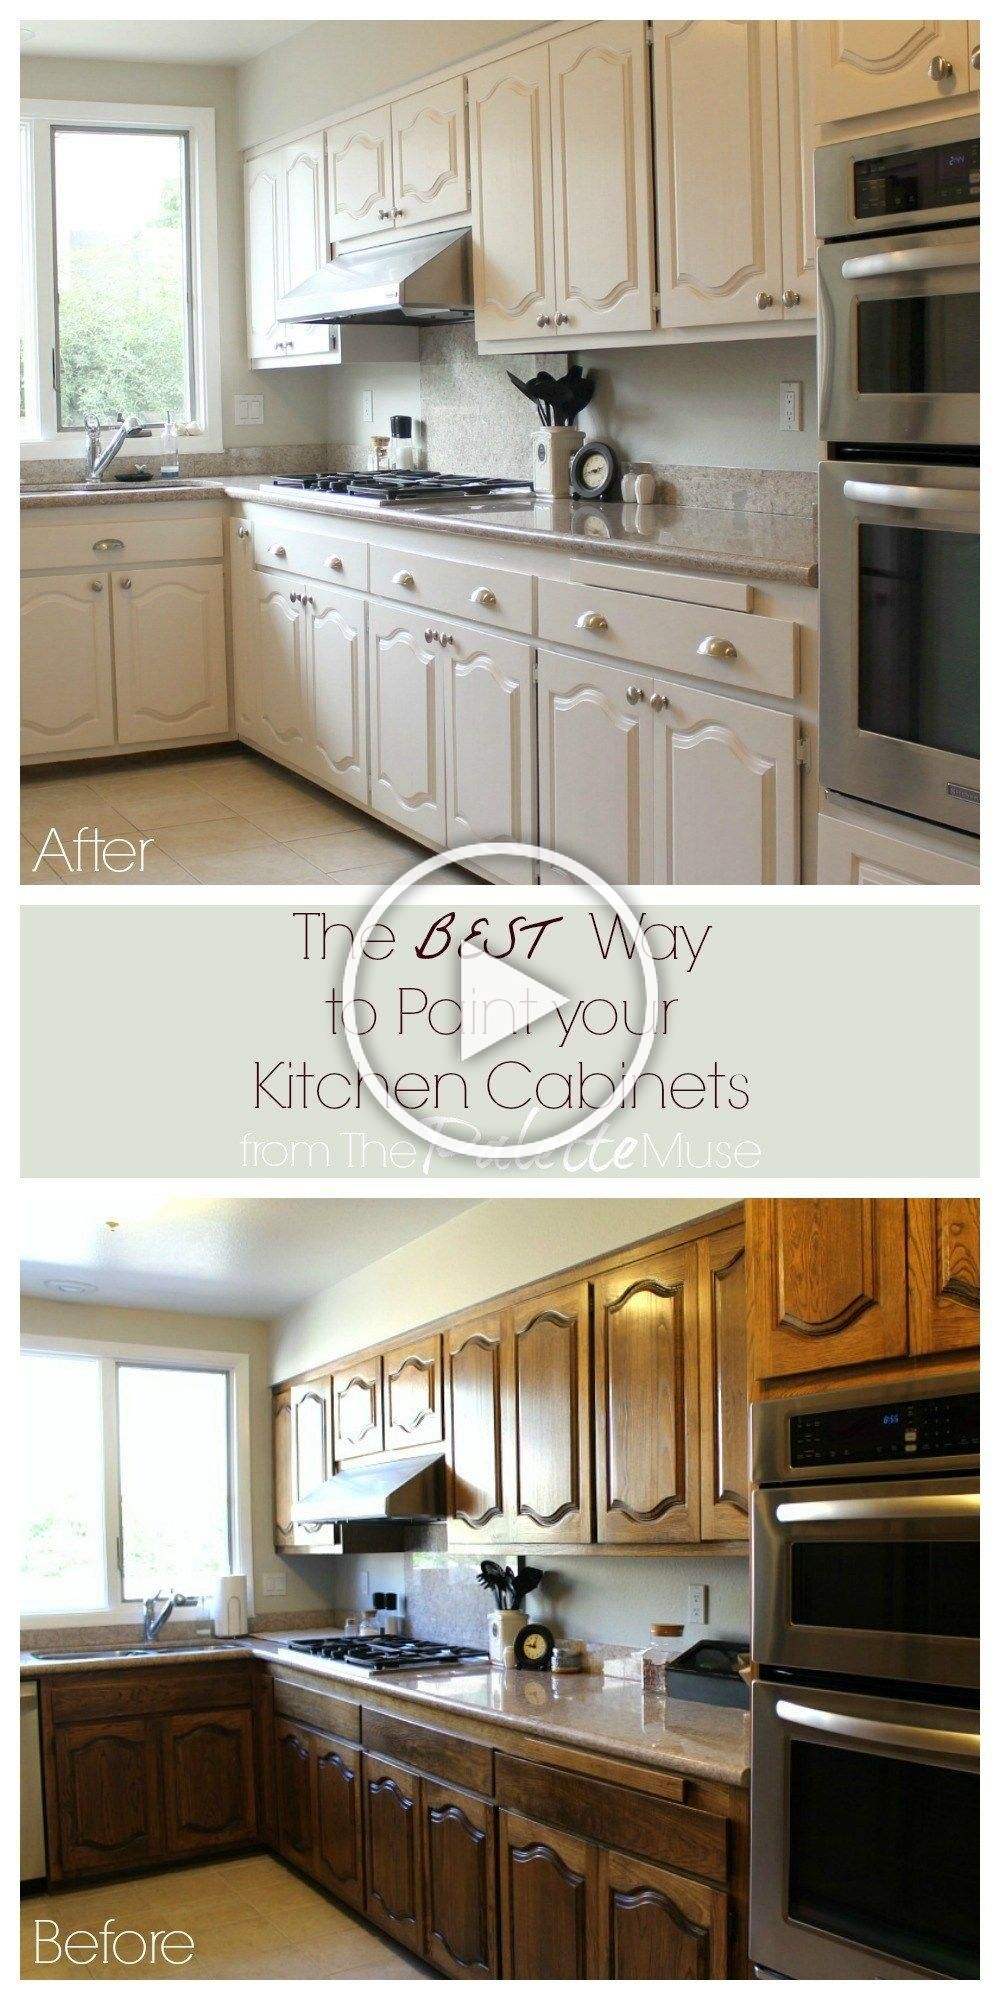 The Palette Muse Best Way To Paint Kitchen Cabinets With Americana Decor Satin Enamels Decoartproject Kitchen Design Diy New Kitchen Cabinets Kitchen Design